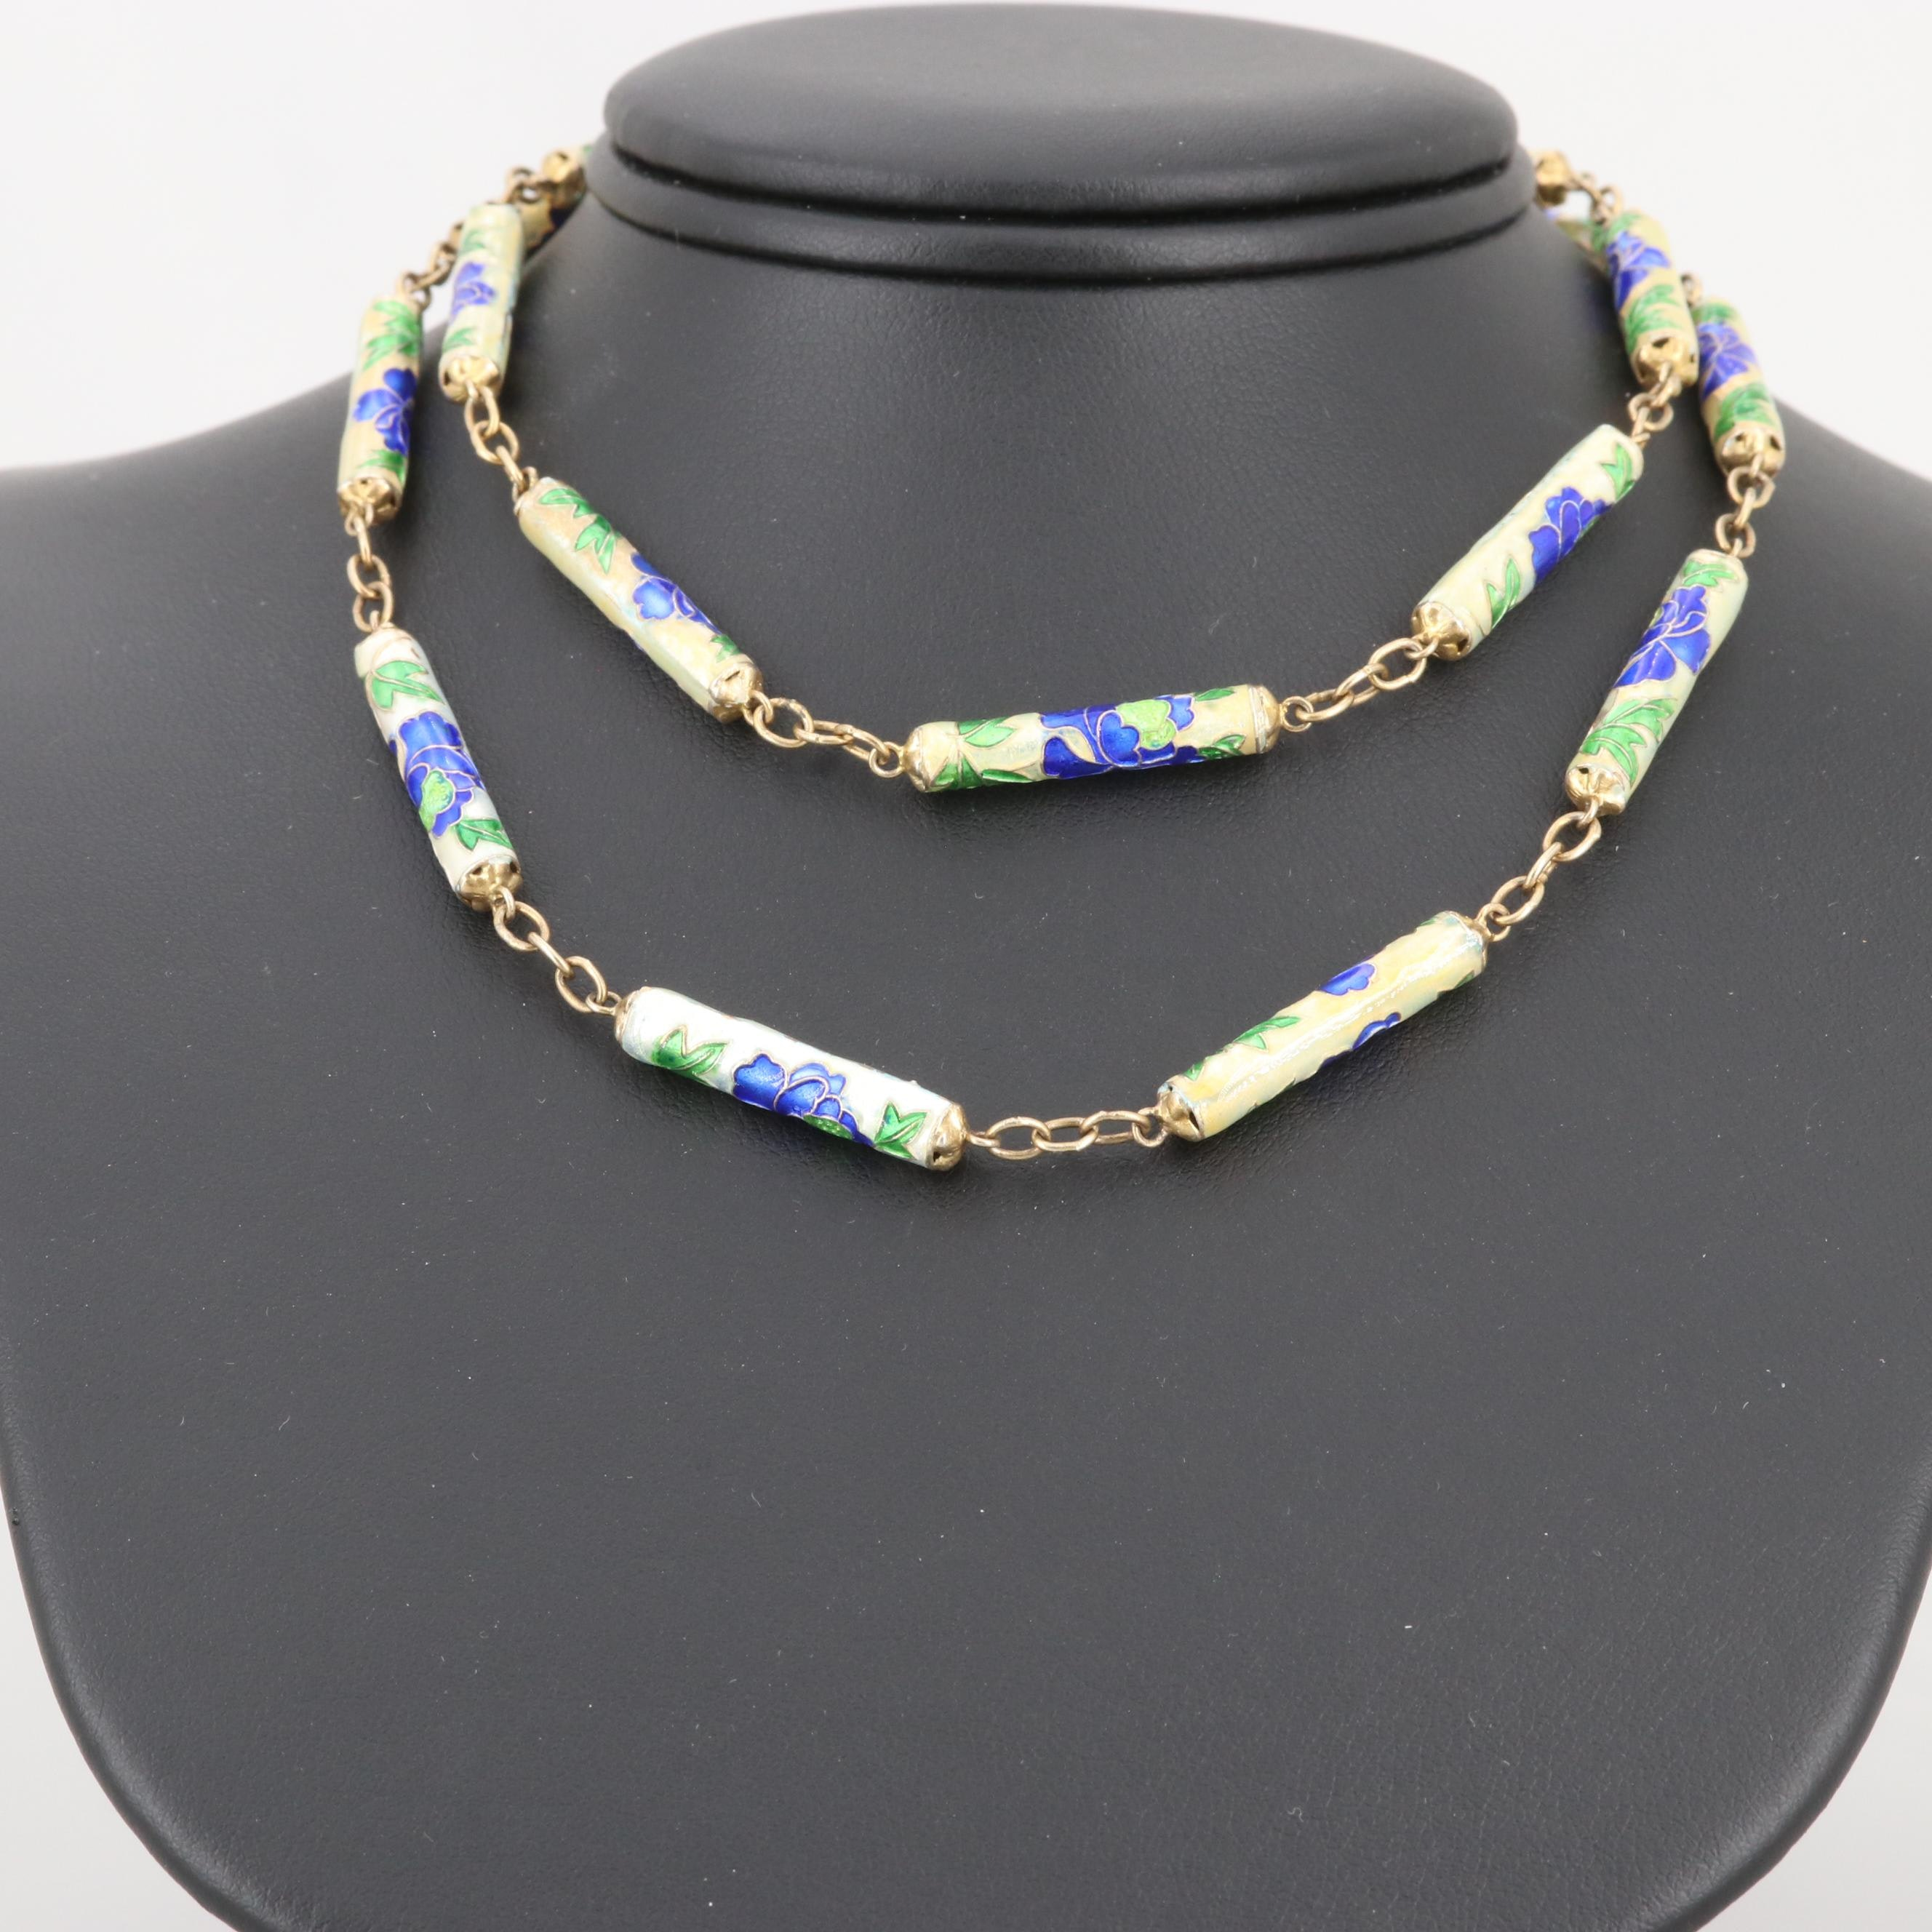 Chinese Sterling Silver Cloisonné Enamel Beaded Necklace